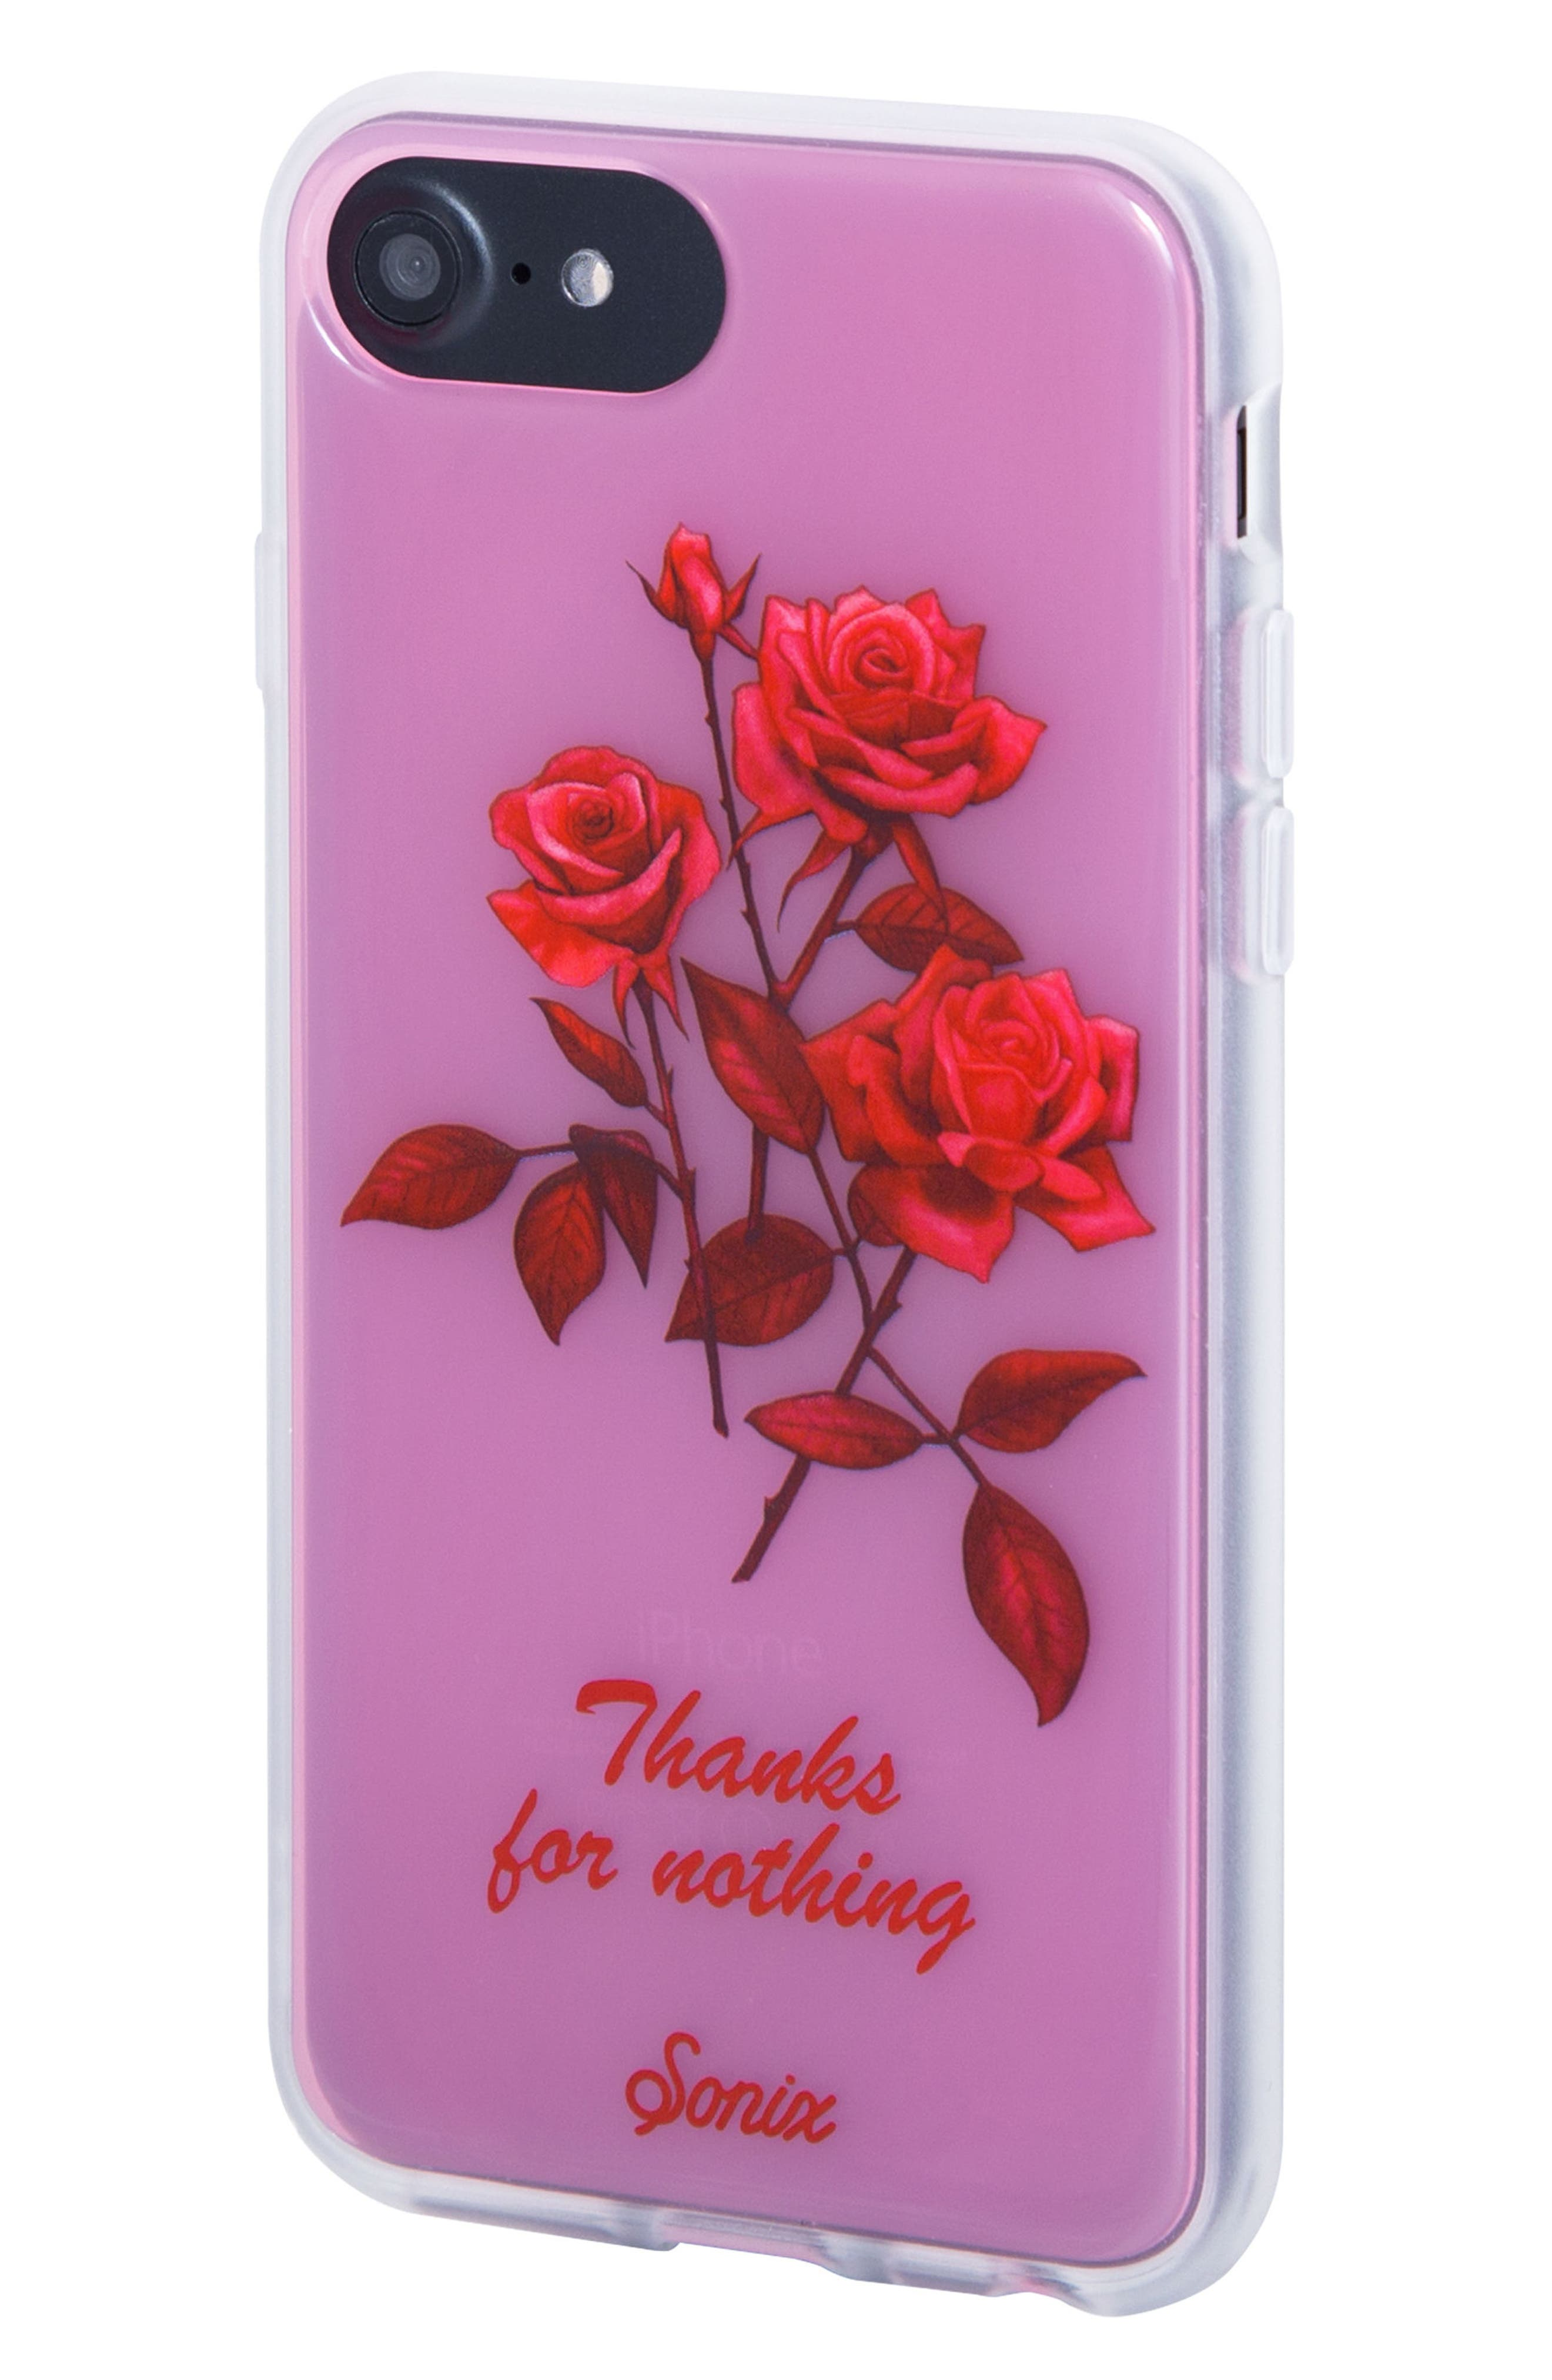 Thanks for Nothing iPhone 6/6s/7/8 & 6/6s/7/8 Plus Case,                             Alternate thumbnail 3, color,                             Pink/ Red